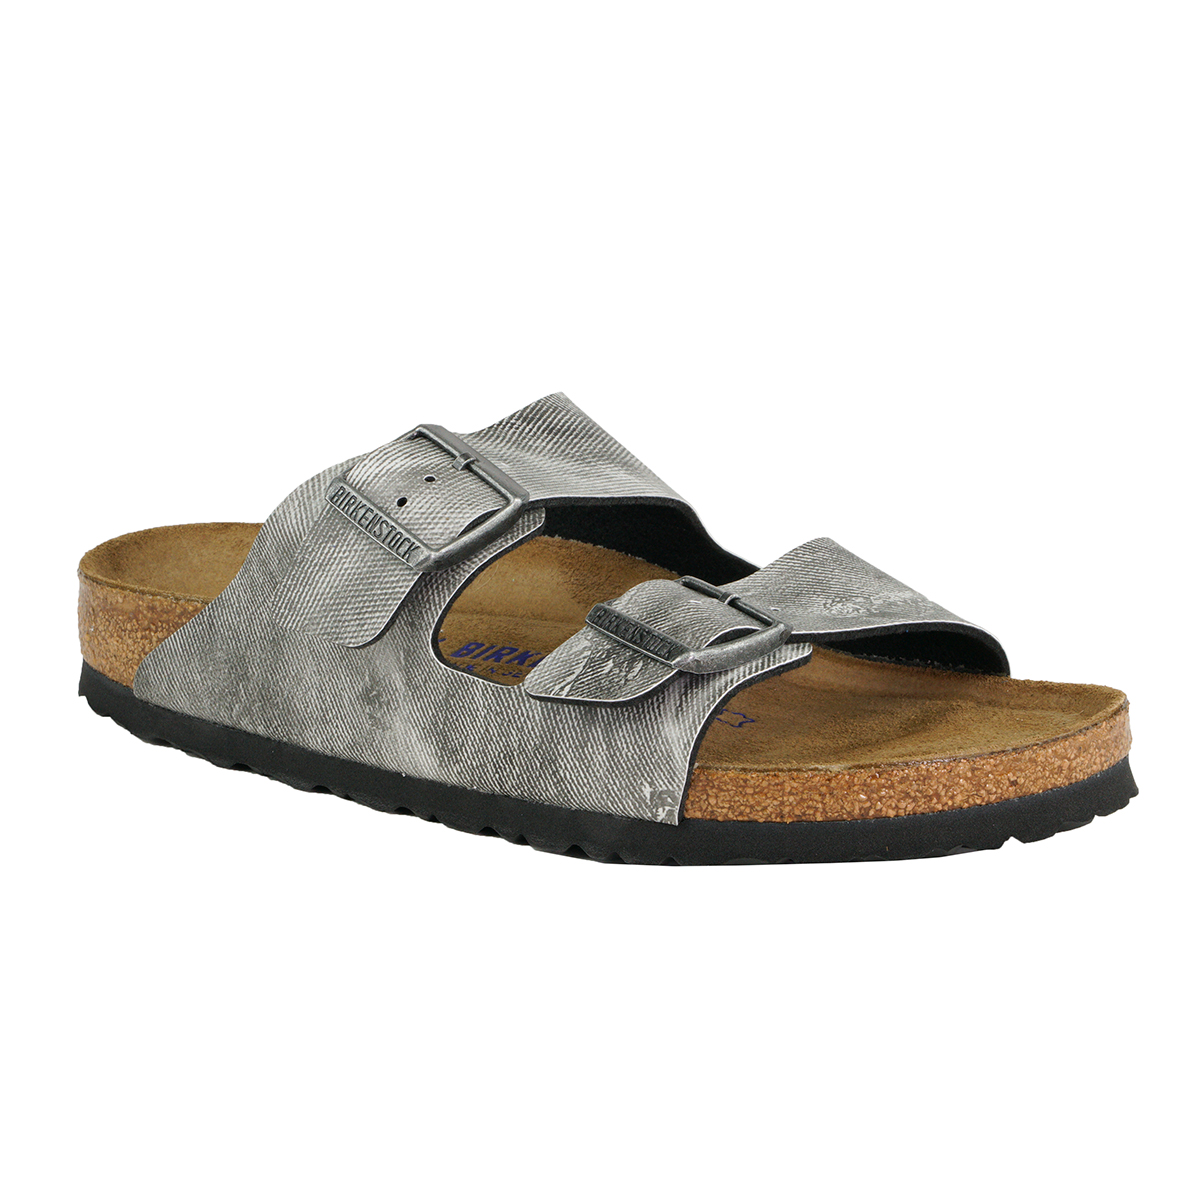 Details about Birkenstock Arizona Sandals Birko Flor Soft Footbed Jeans Washed Out Grey 41 N